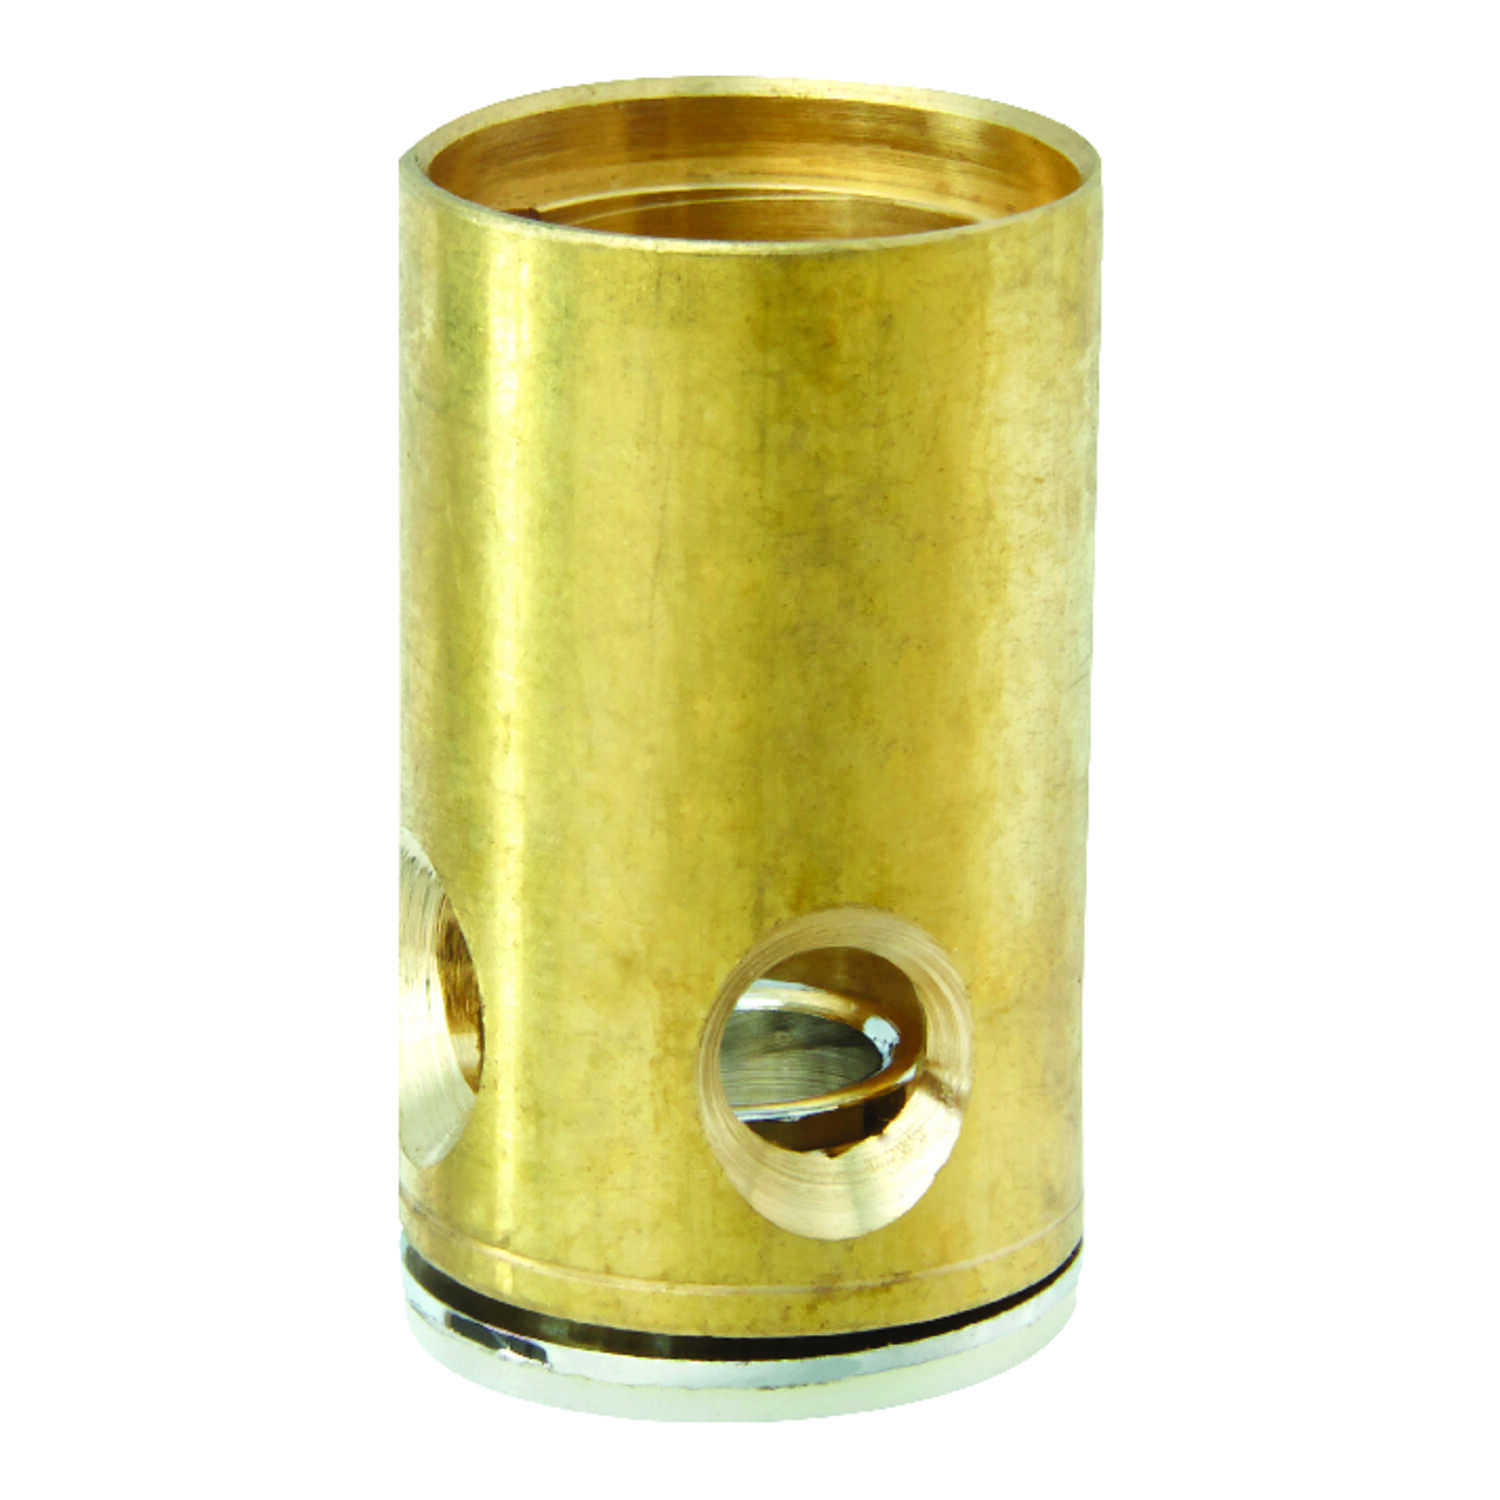 Ace  Hot and Cold  1Z-4H/C  Faucet Stem Barrel  For Kohler